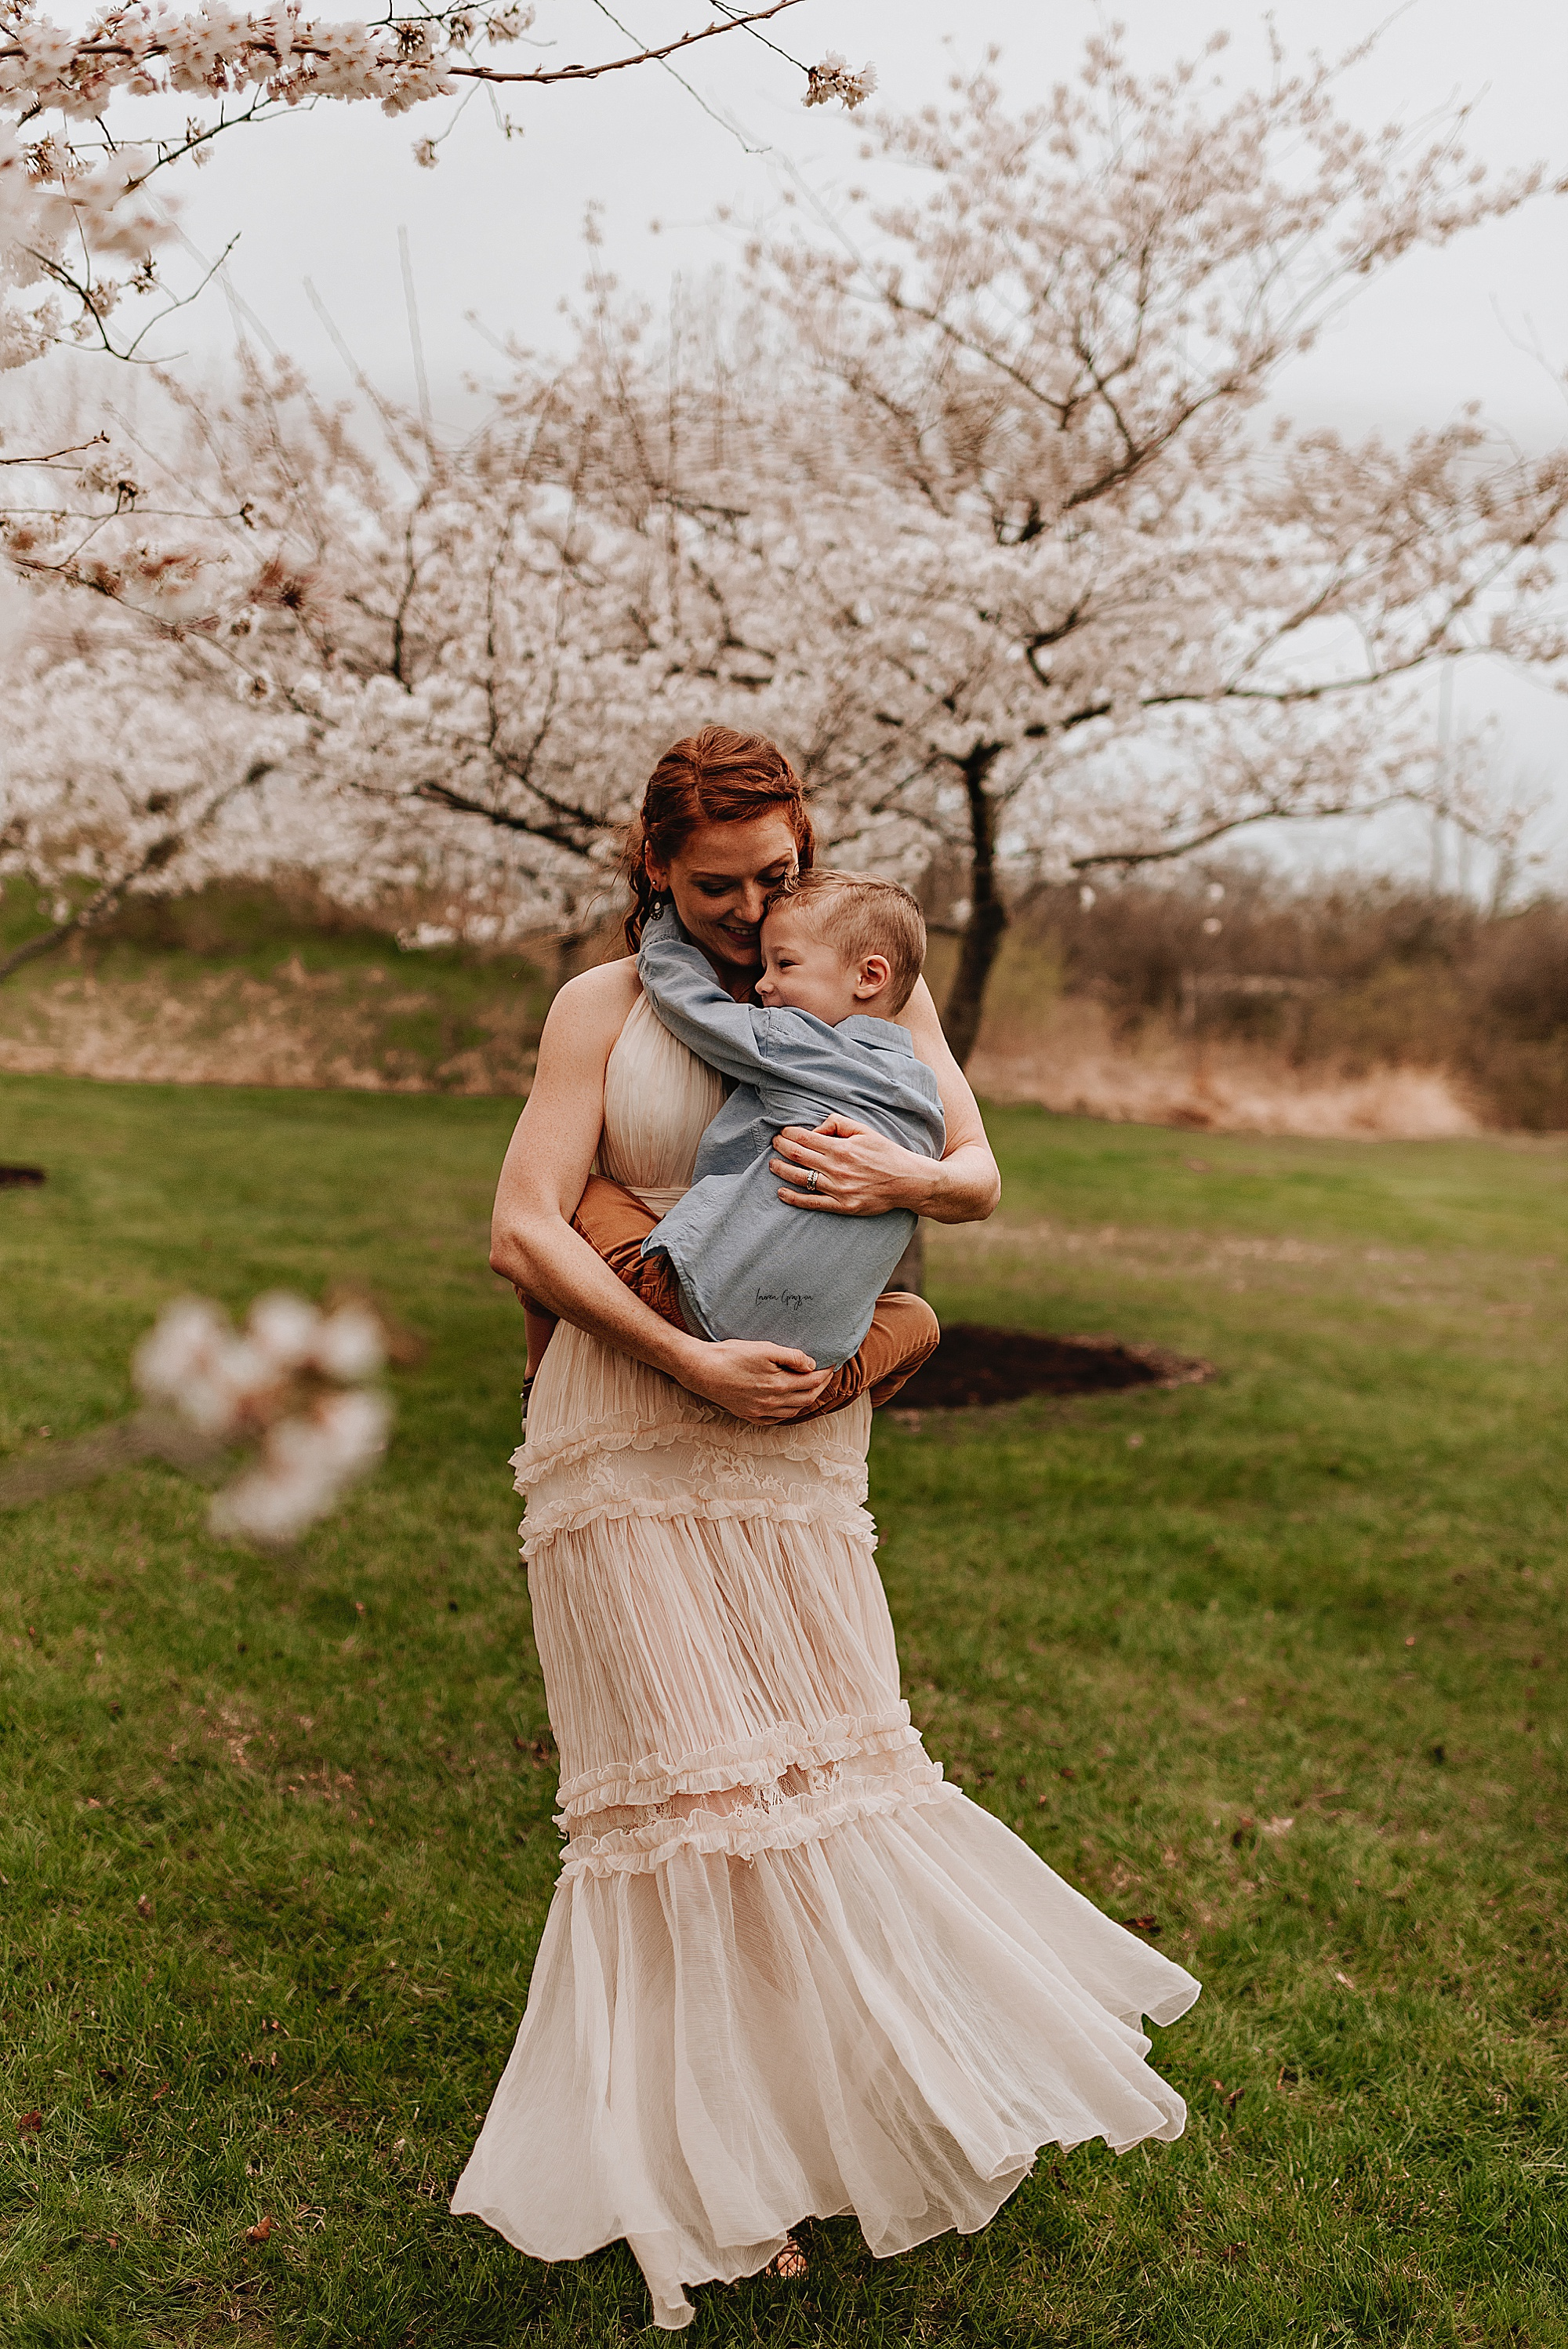 lauren-grayson-photography-cleveland-ohio-motherhood-family-child-photo-session-cherry-blossoms_0009.jpg